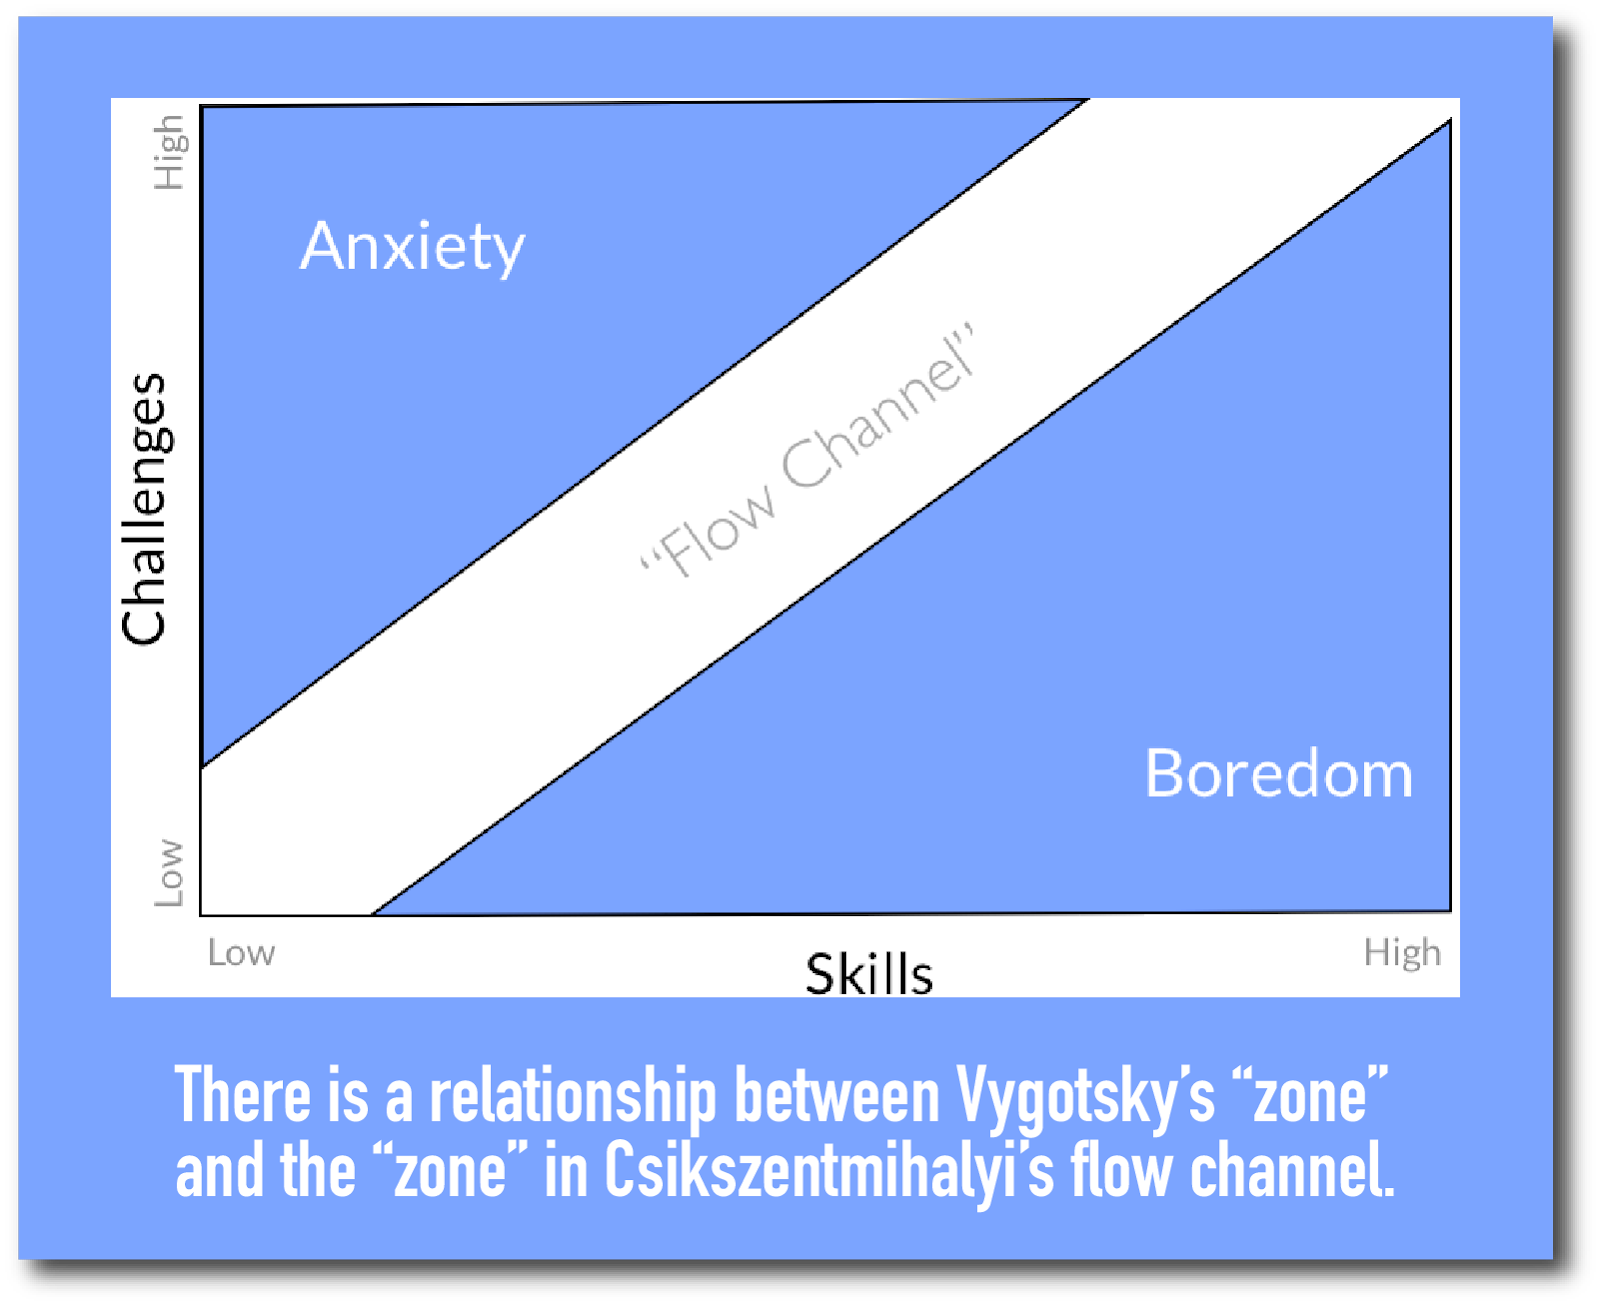 The zone and the flow channel